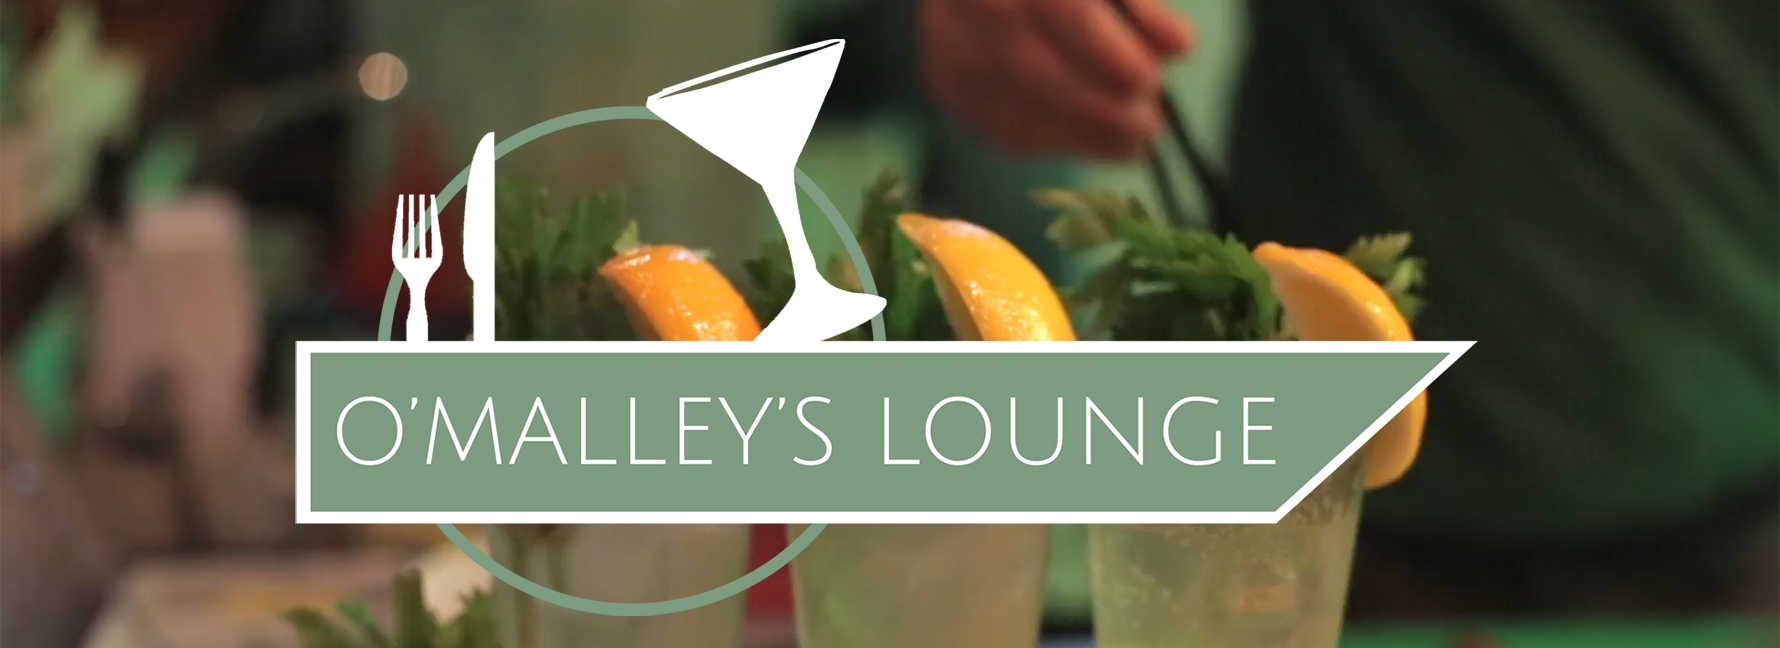 O'Malley's lounge logo and three cocktails